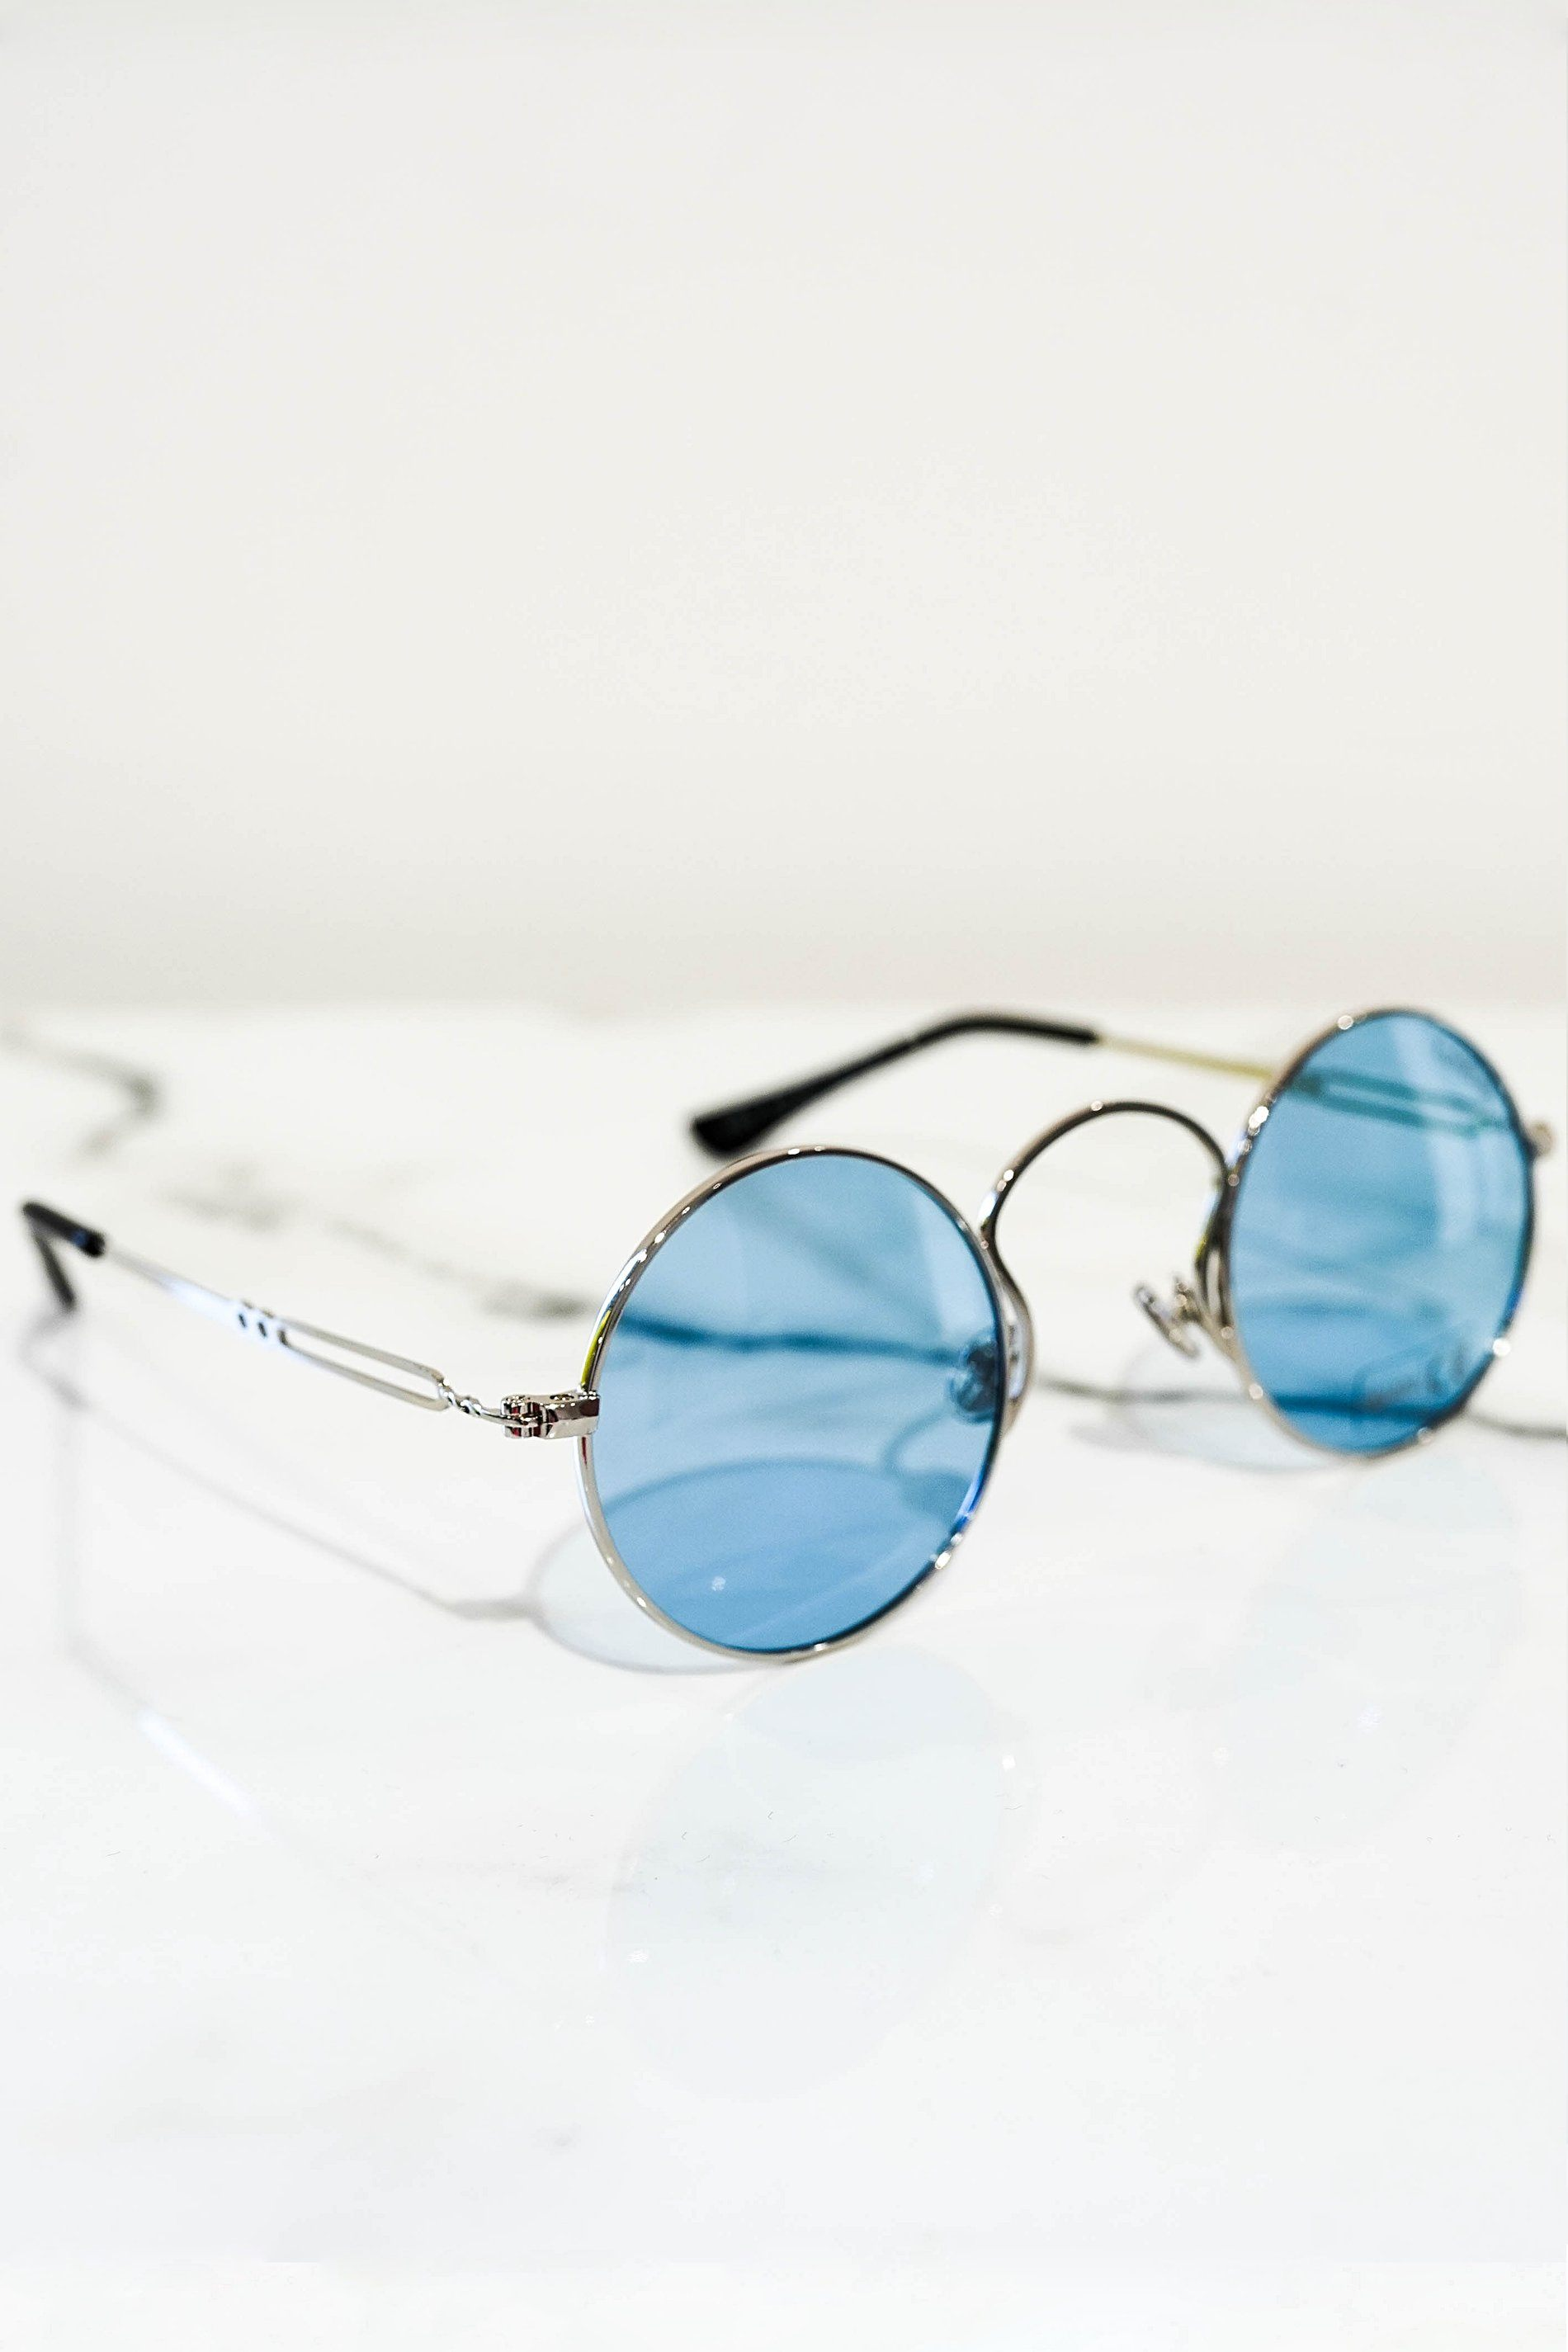 Retro sunglasses silver With blue lens - PEGADOR - Dominate the Hype